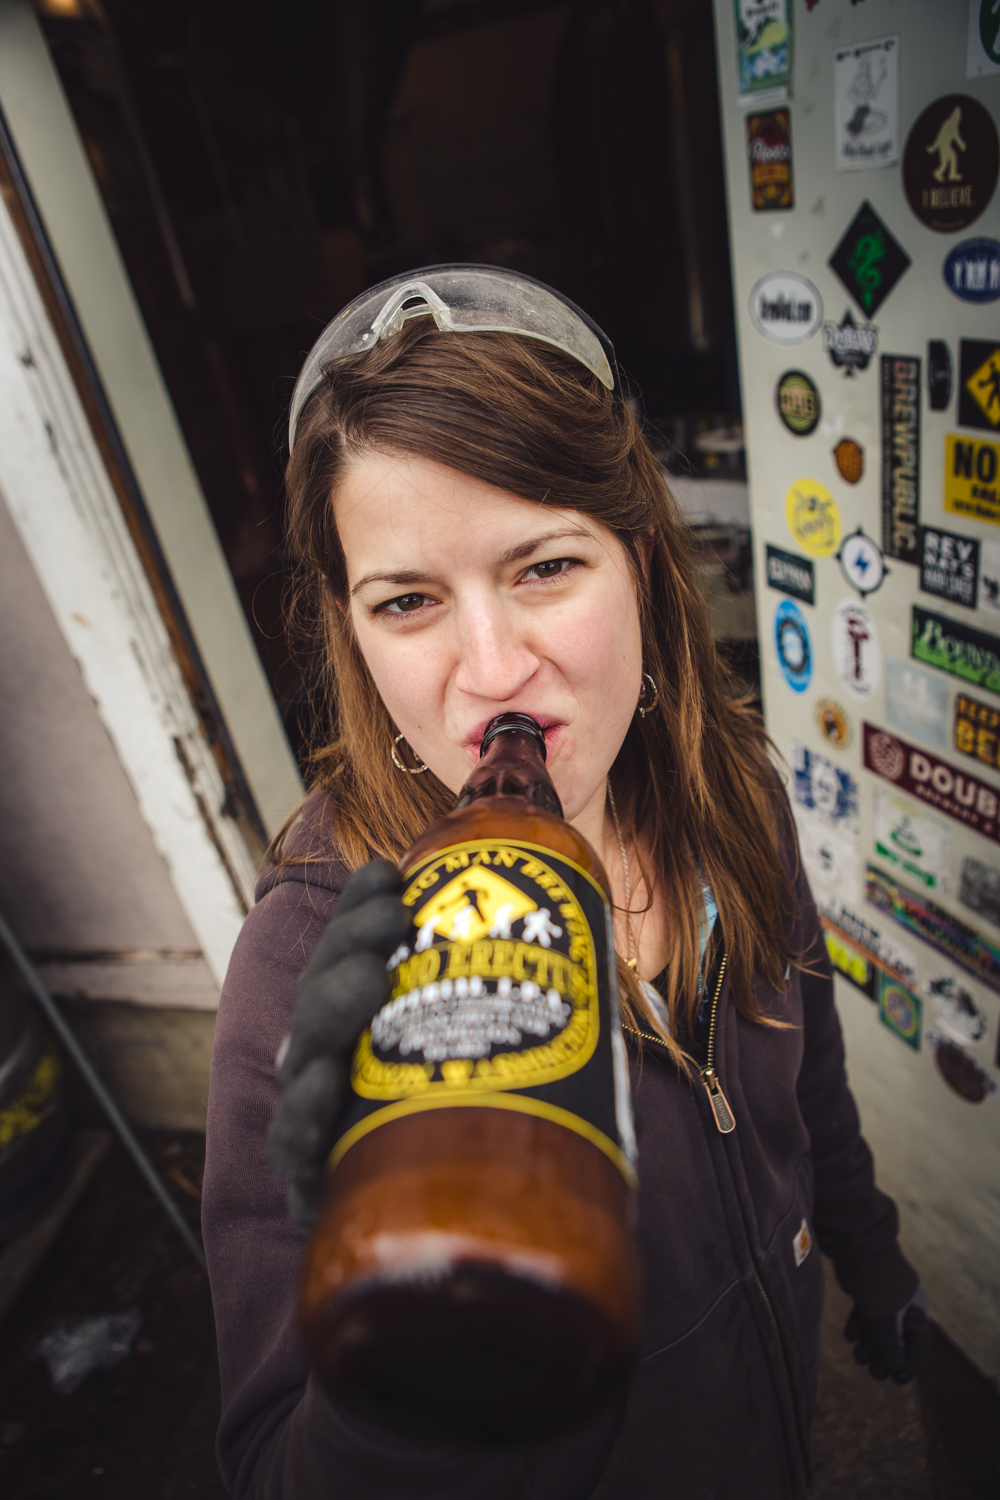 Walking-Man-Assistant-Brewer-Emily-Albaugh-takes-a-sip-from-the-first-bottle